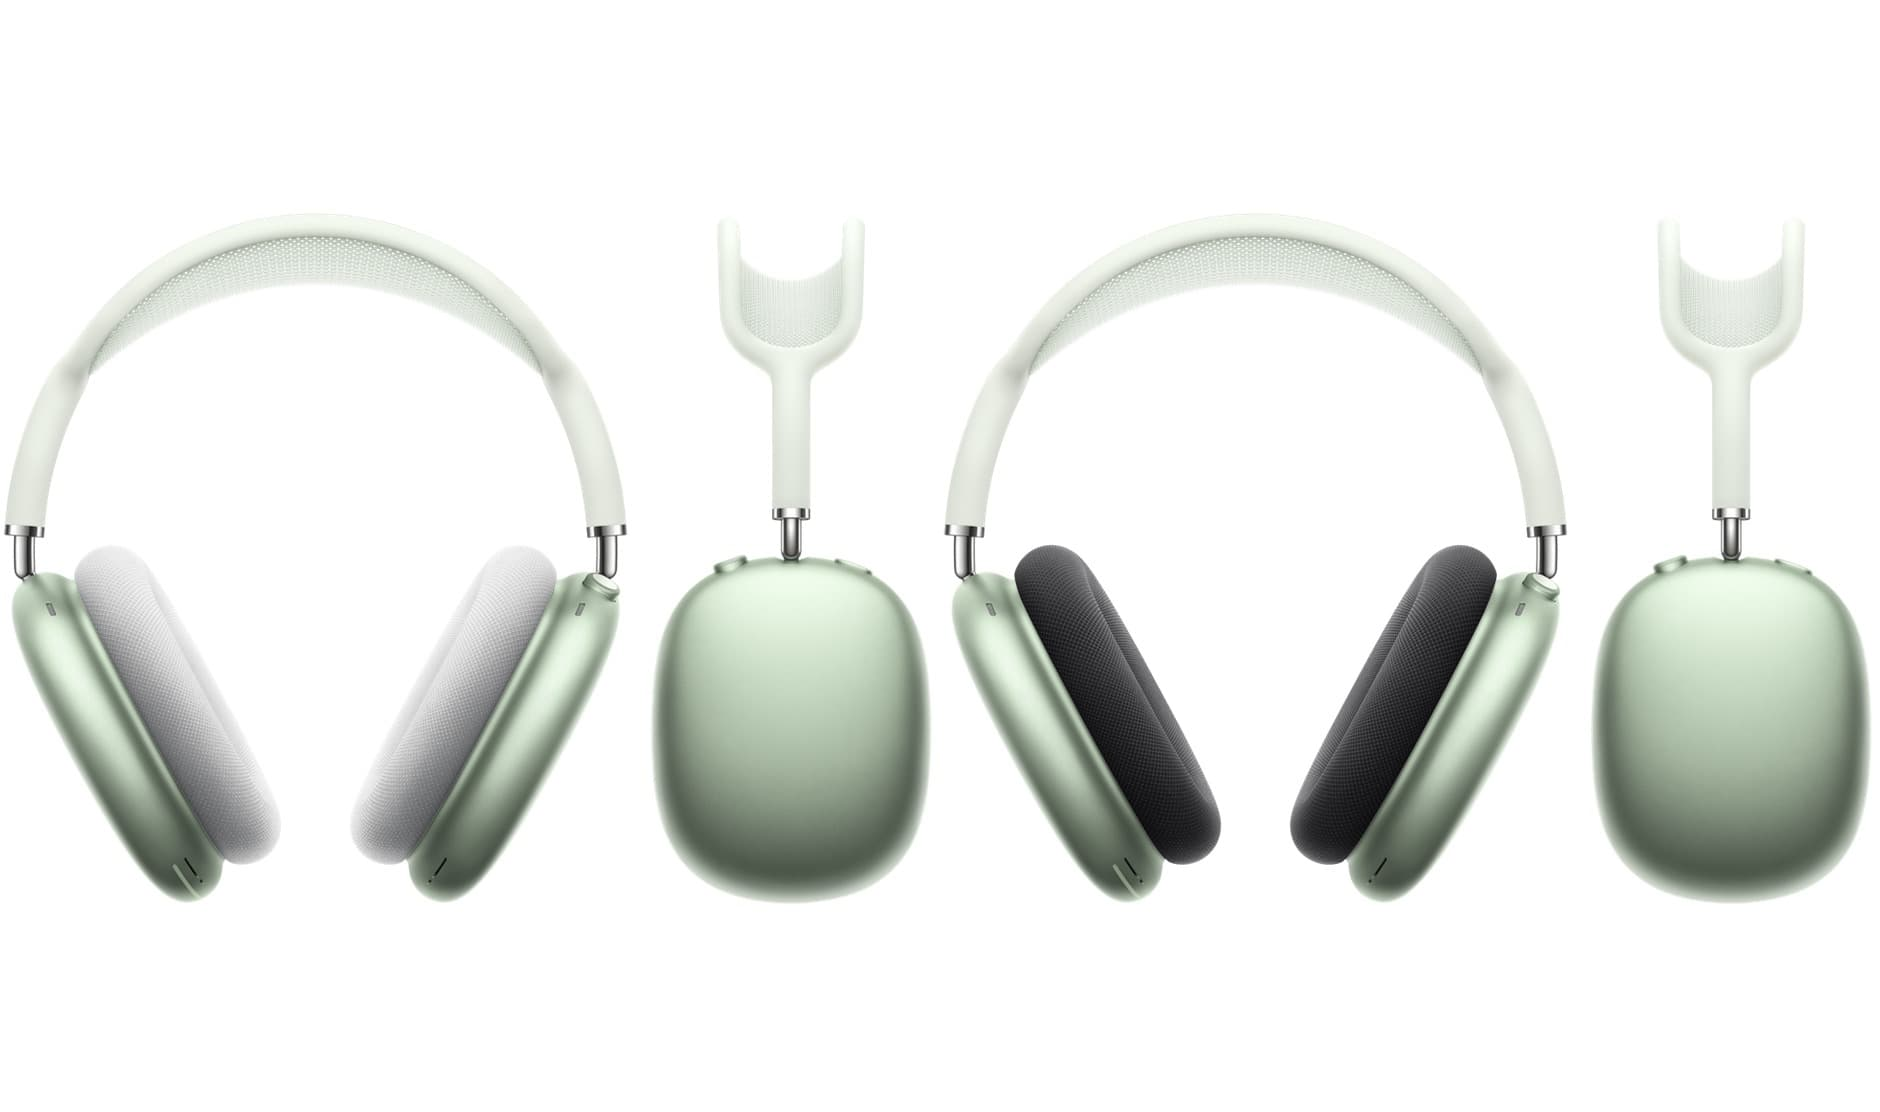 AirPods Max 綠色搭配